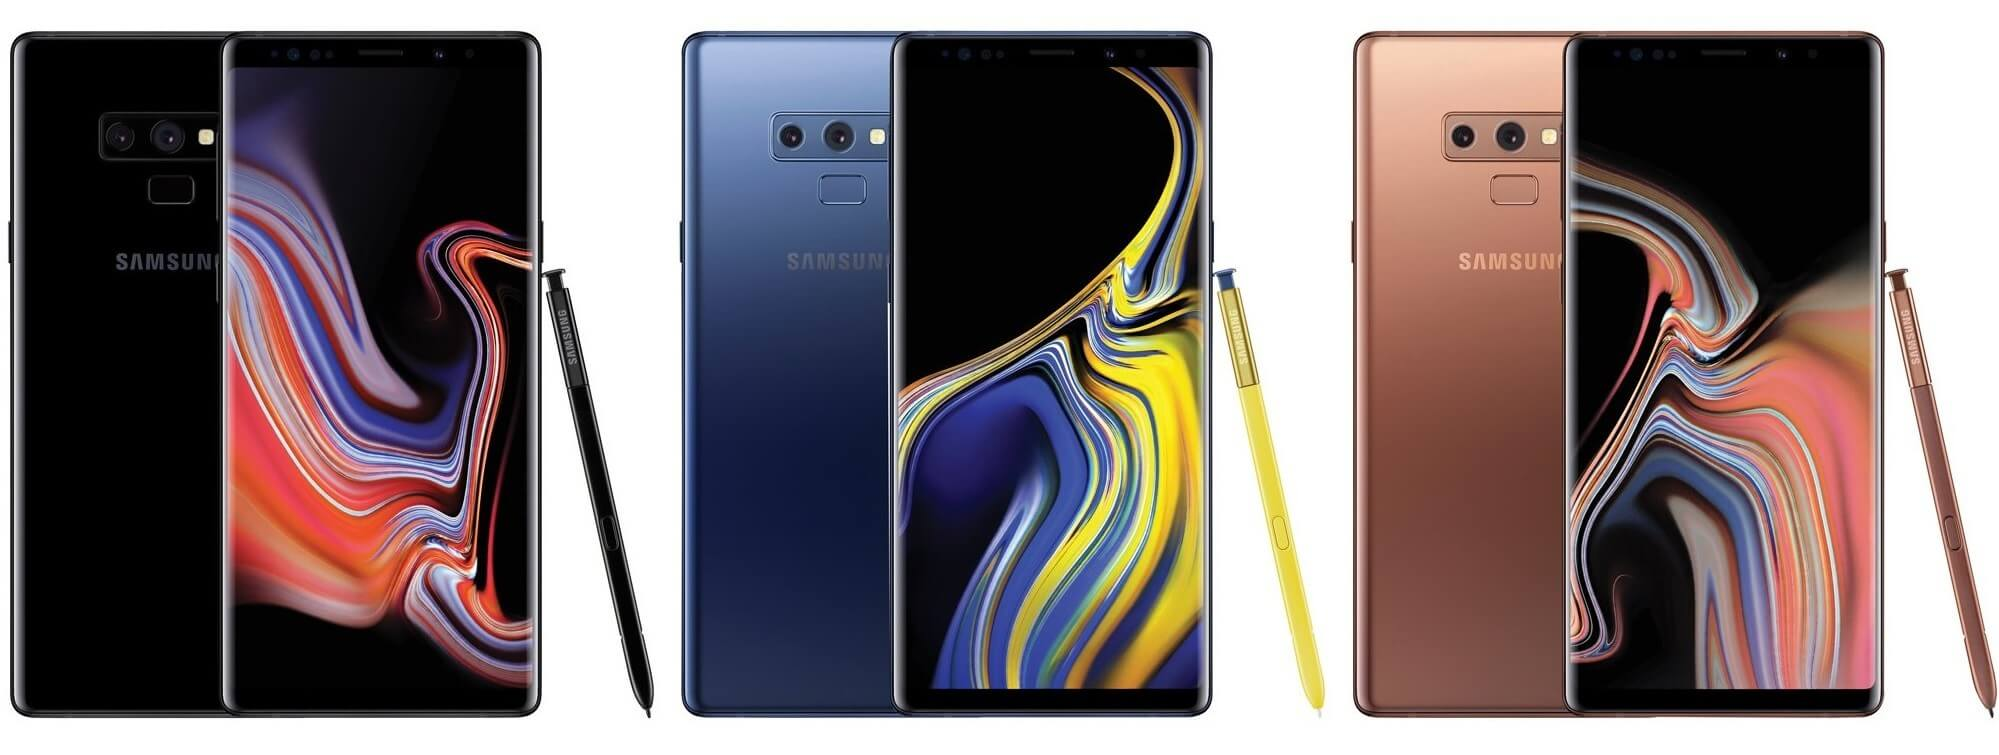 1532461210_galaxy_note9_colors_2 cores